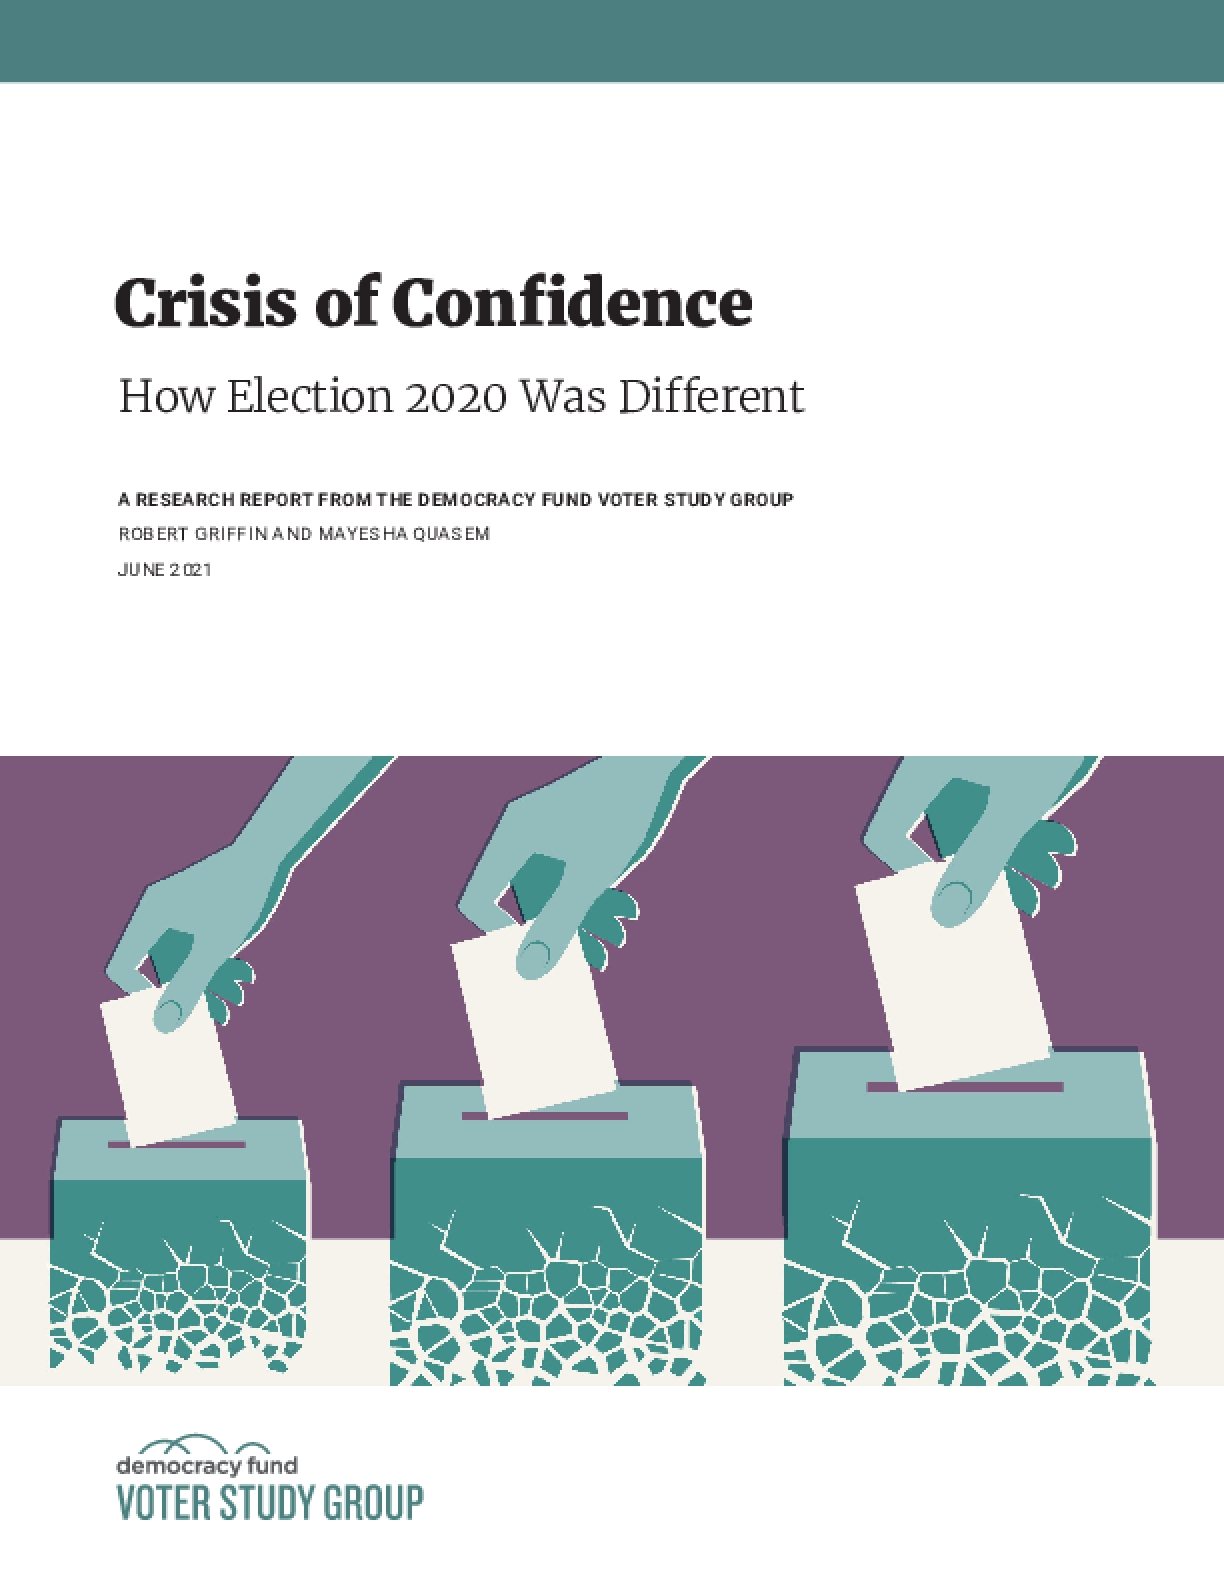 Crisis of Confidence: How Election 2020 Was Different